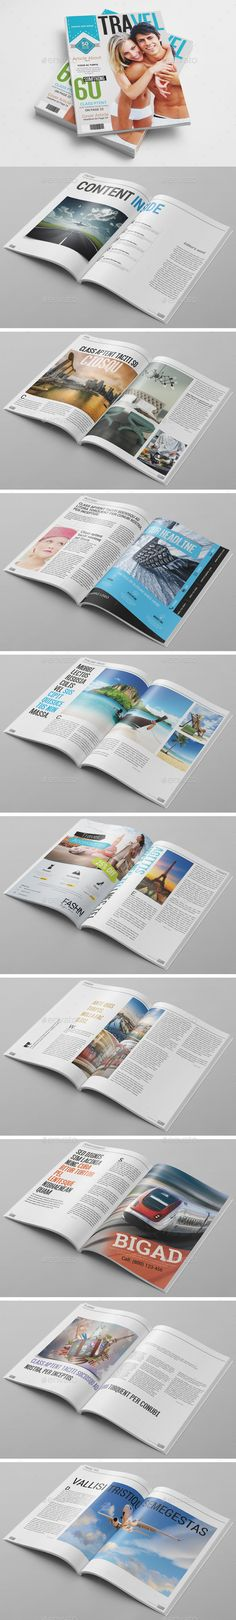 20 Pages Magazine Template — Photoshop PSD #travel #creative • Available here → https://graphicriver.net/item/20-pages-magazine-template/10617457?ref=pxcr